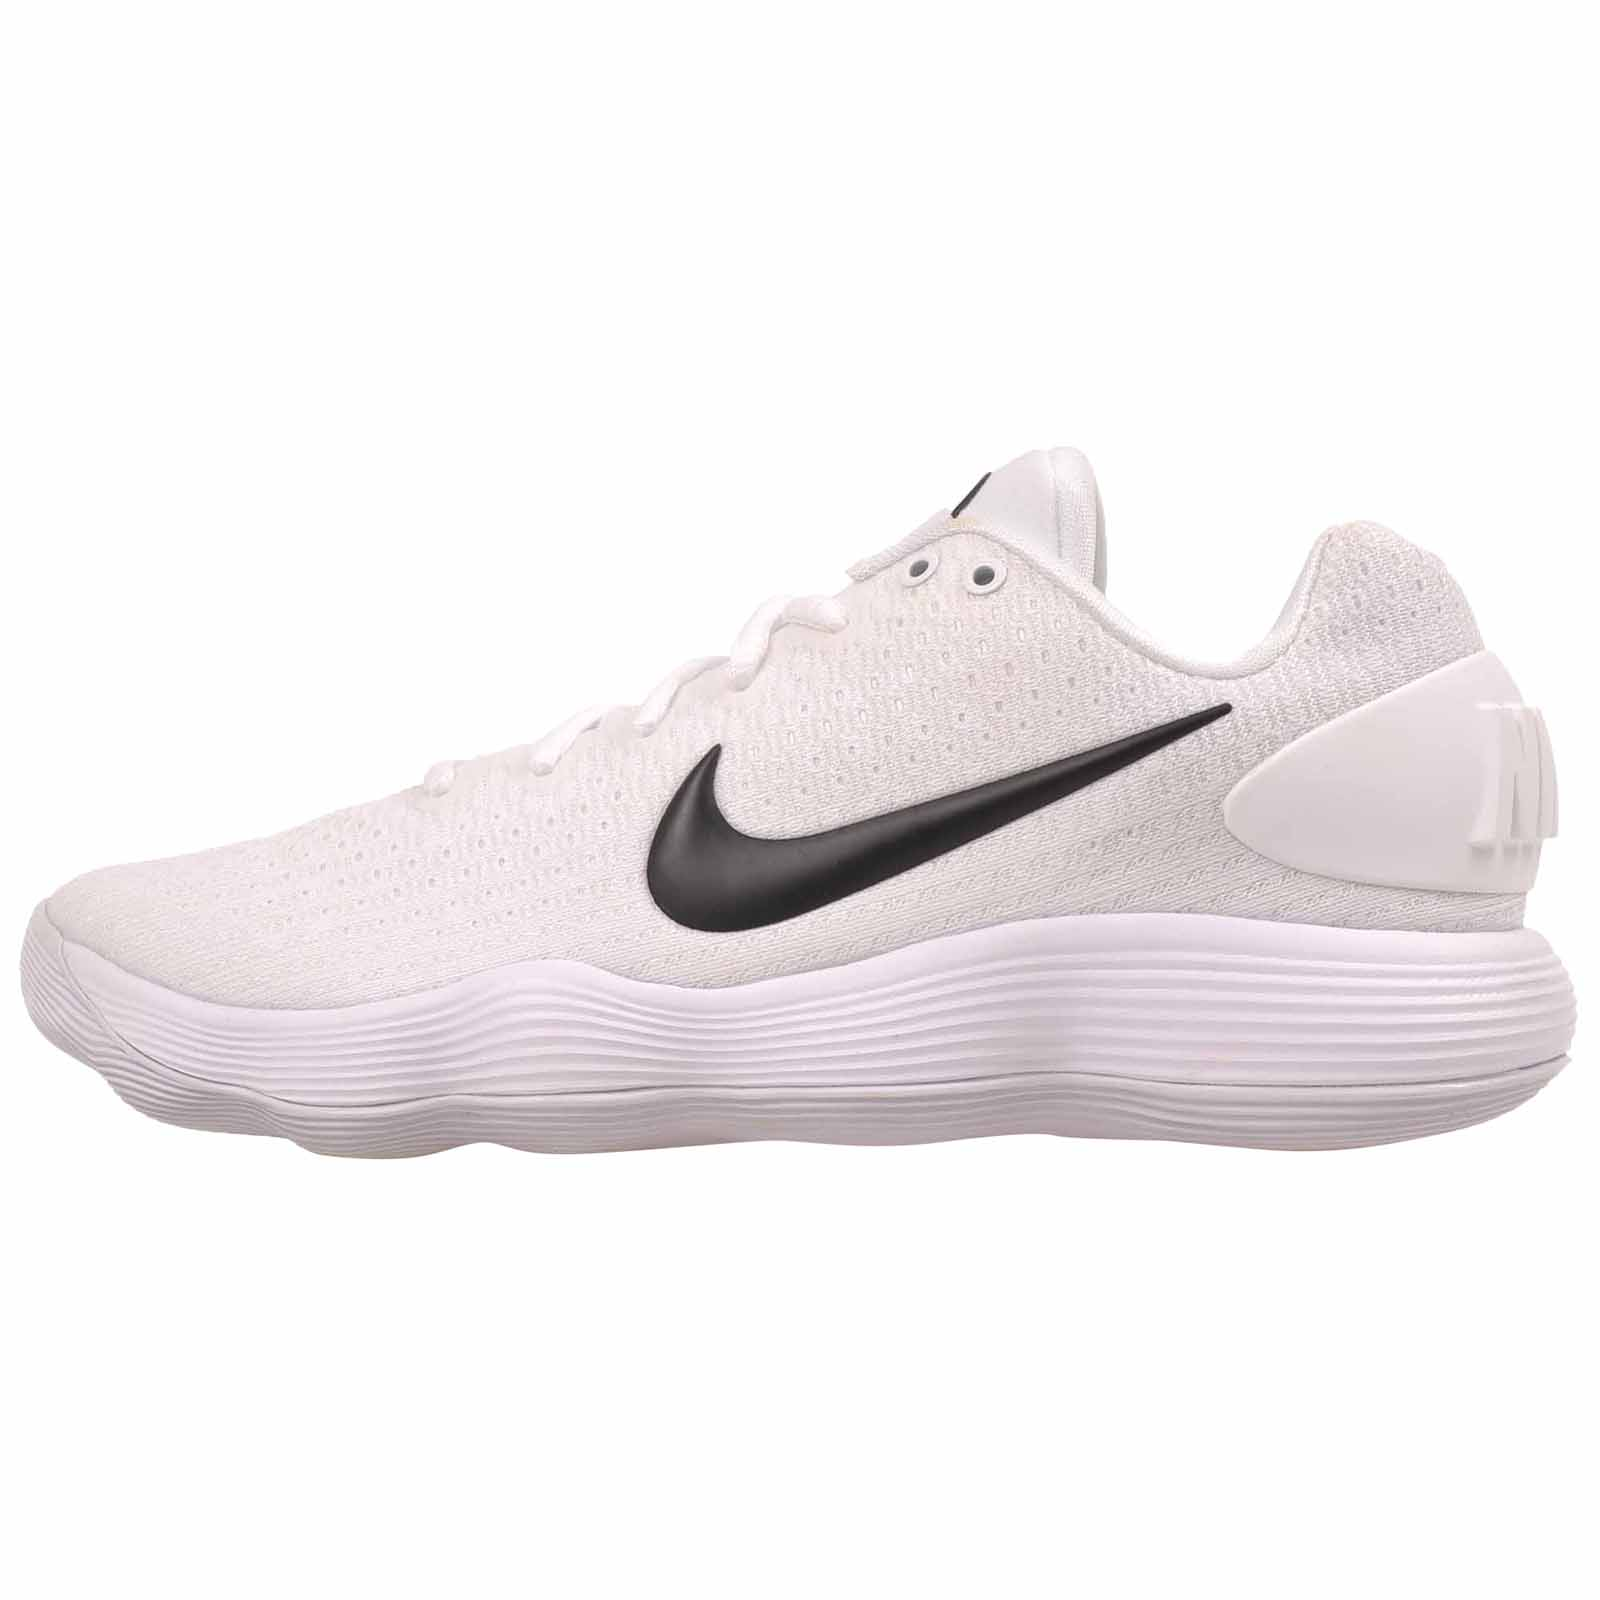 NIKE Womens Hyperdunk 2017 Low Tb 897812-100 WHITE/BLACK Womens Size 9.5